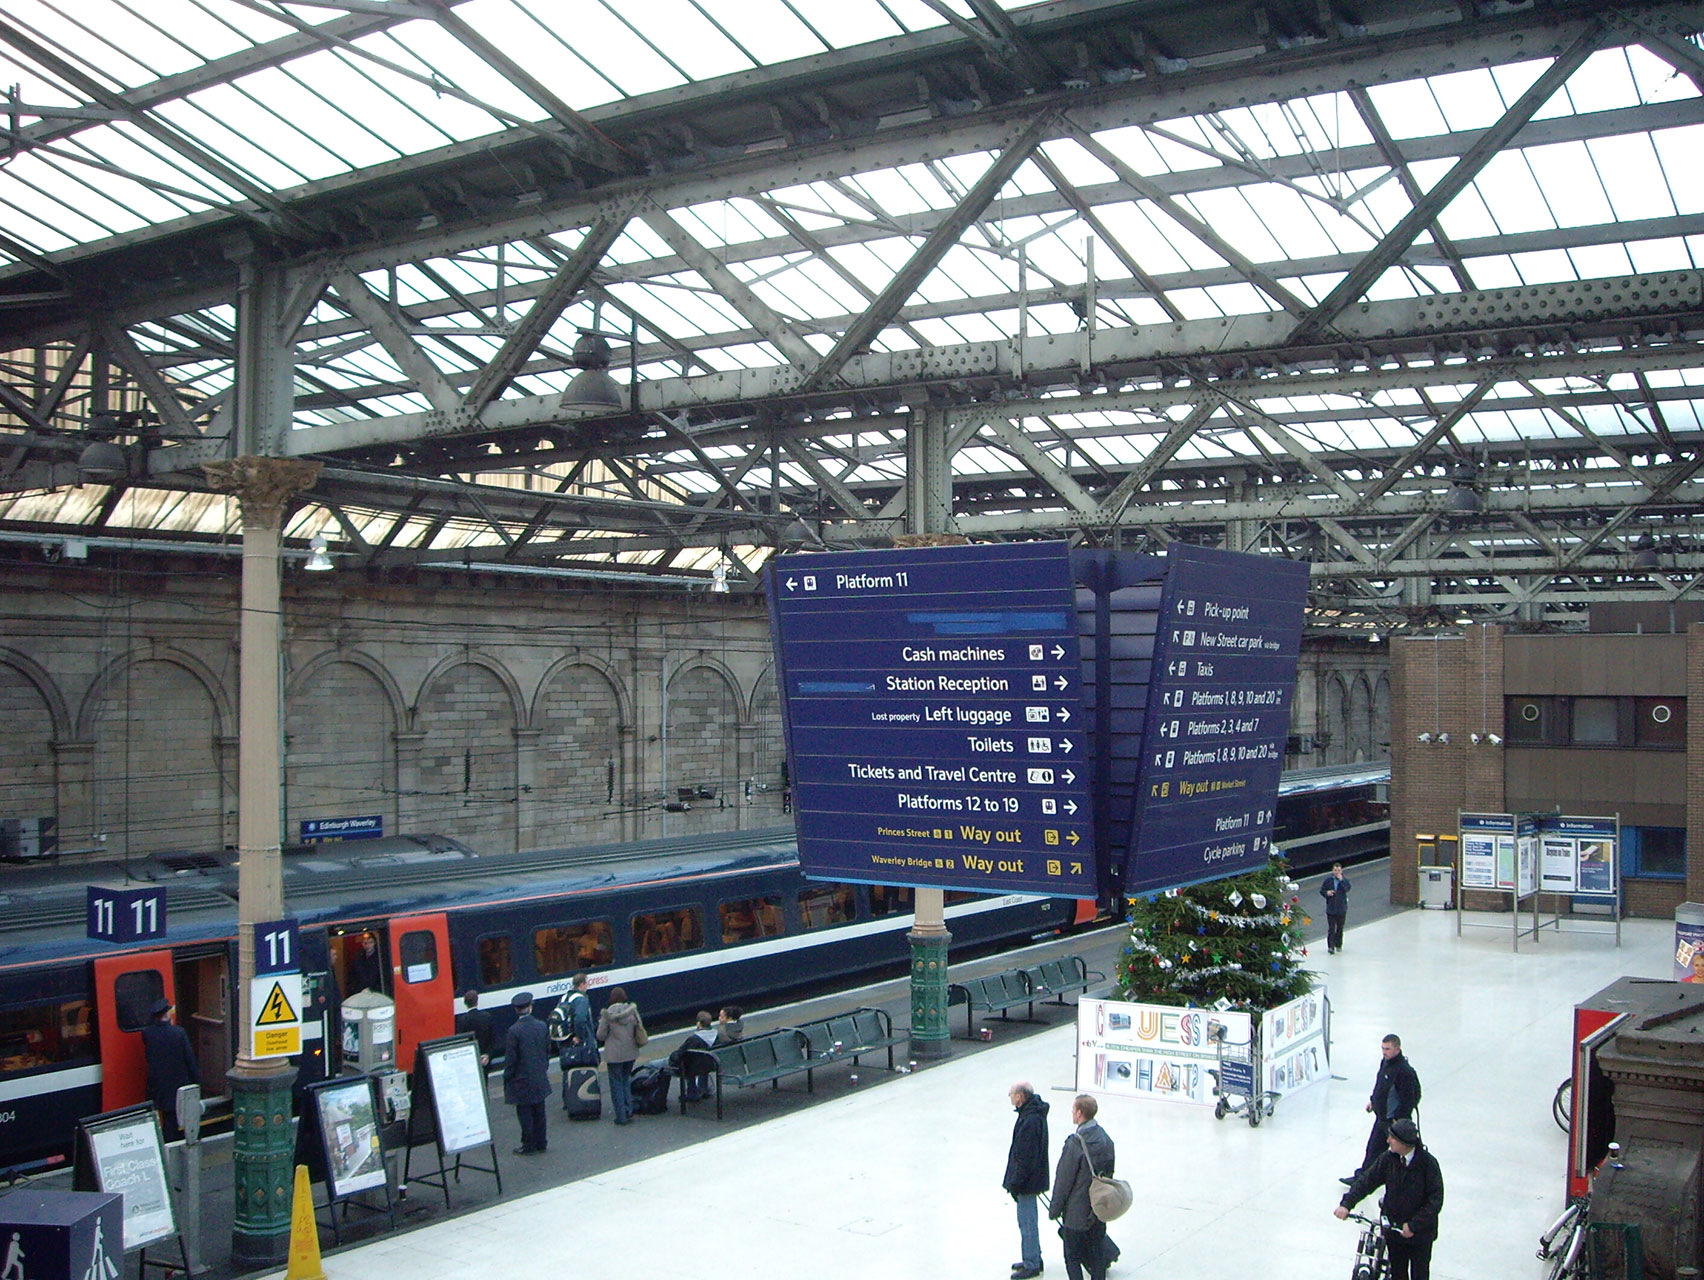 Waverley Station Edinburgh Project - SVM Glasgow